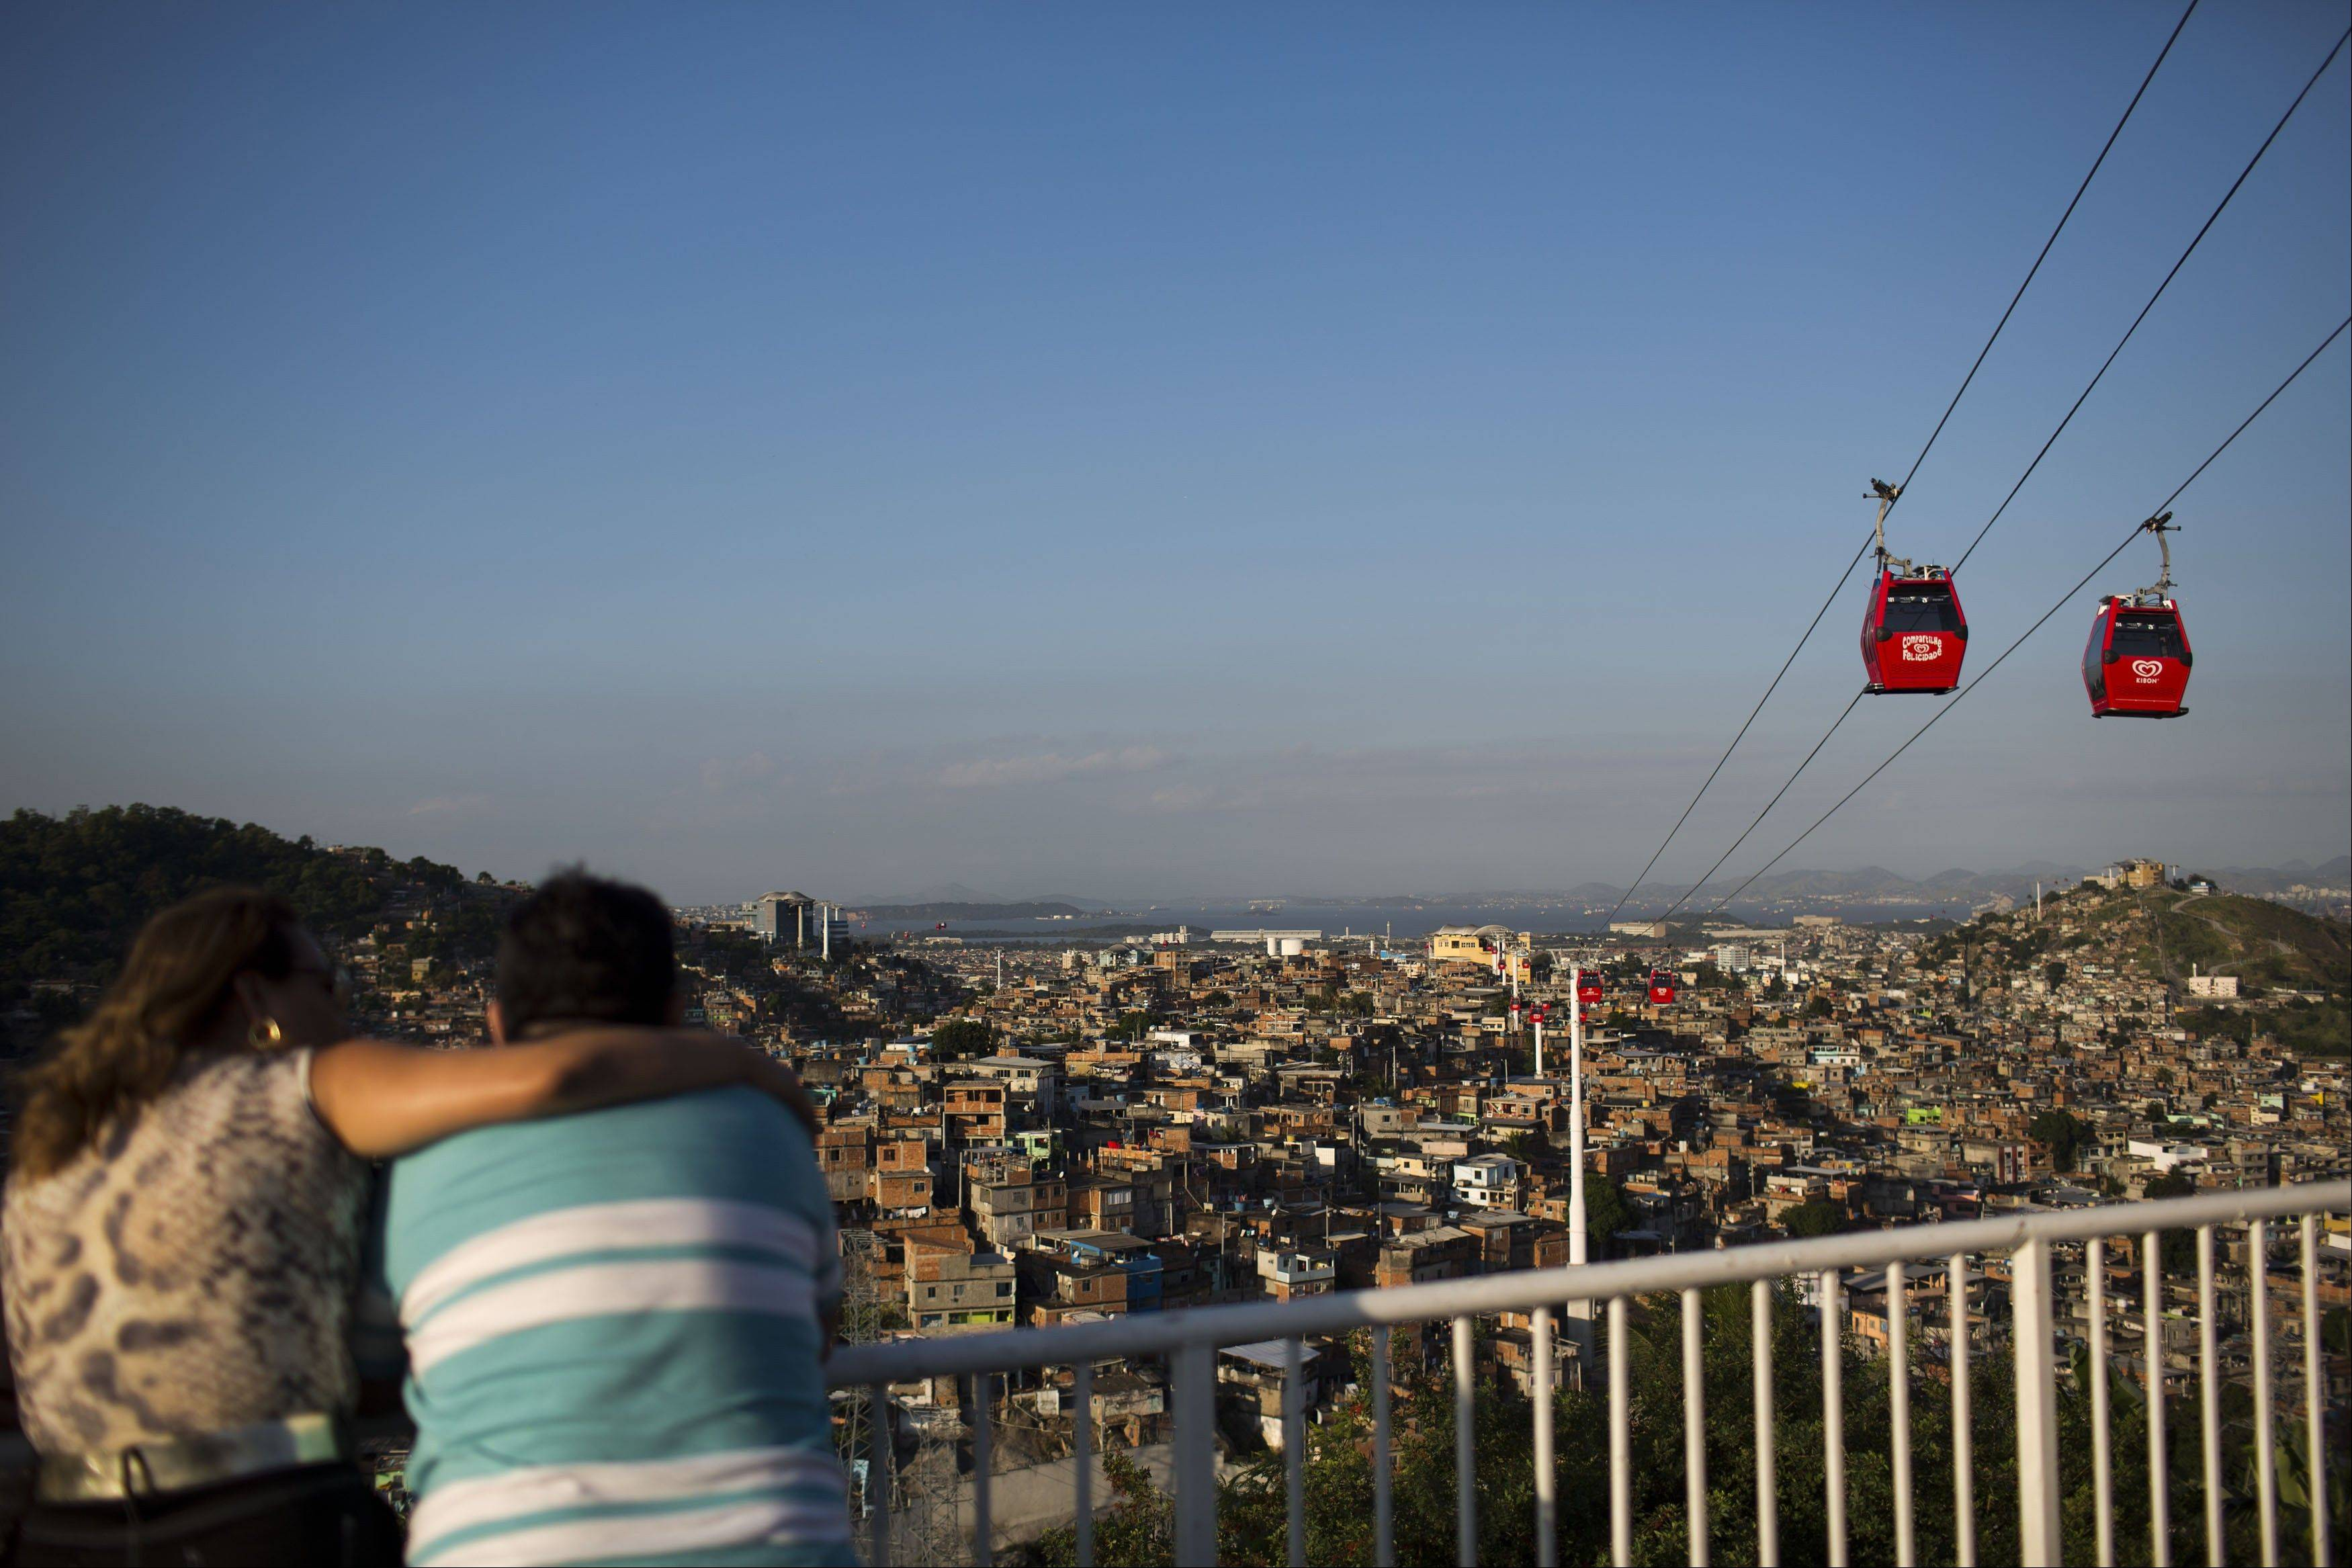 A couple looks out over the Complexo do Alemao slum where cable-cars move commuters above the homes in Rio de Janeiro, Brazil. The cable-car system linking six of Alemao�s hilltops over a 2.3-mile route has become a popular tourist attraction.